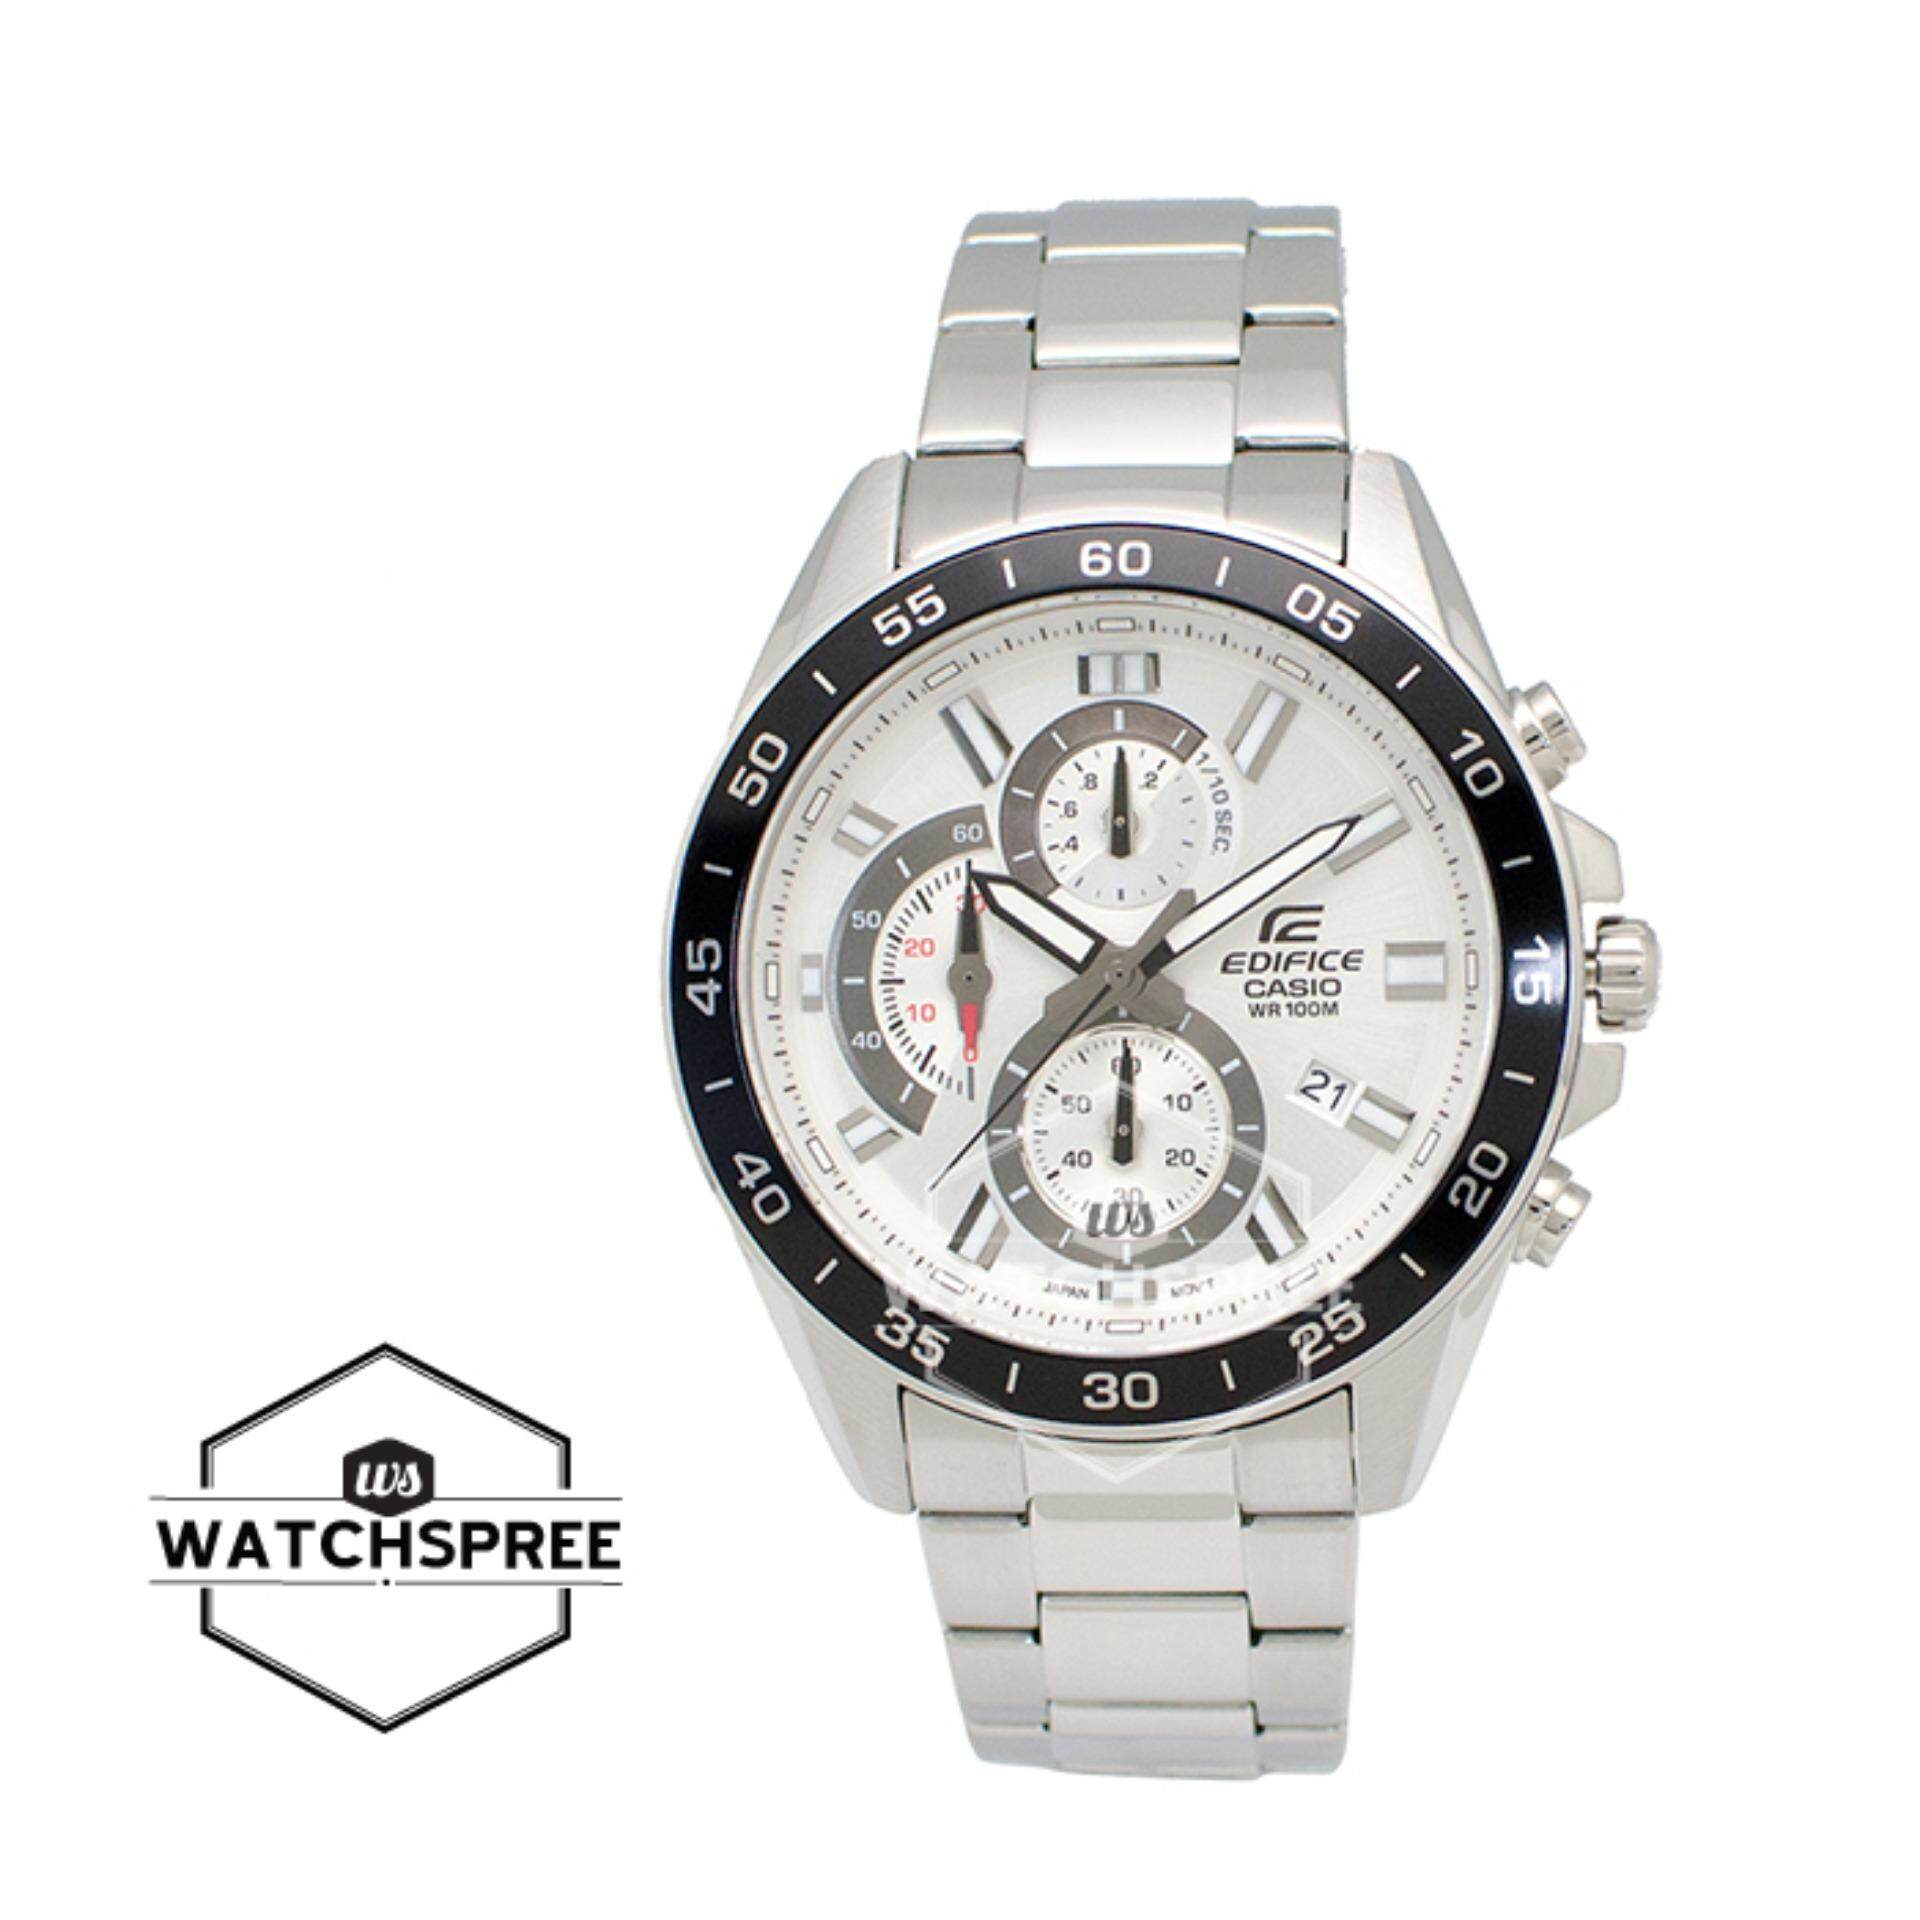 Sell Casio Edifice Stainless Cheapest Best Quality My Store Era 100d 1a4 Myr 465 Standard Chronograph Silver